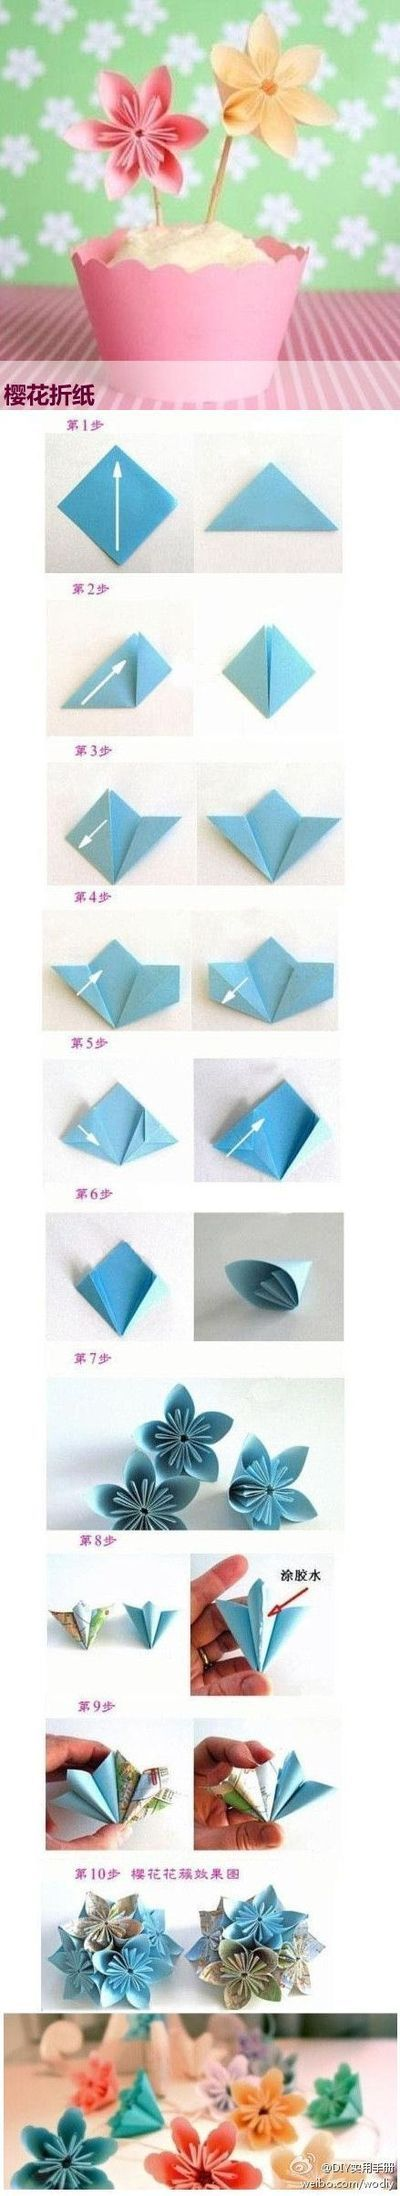 Flower Origami Origami Paper Making Paper Folding Japanese